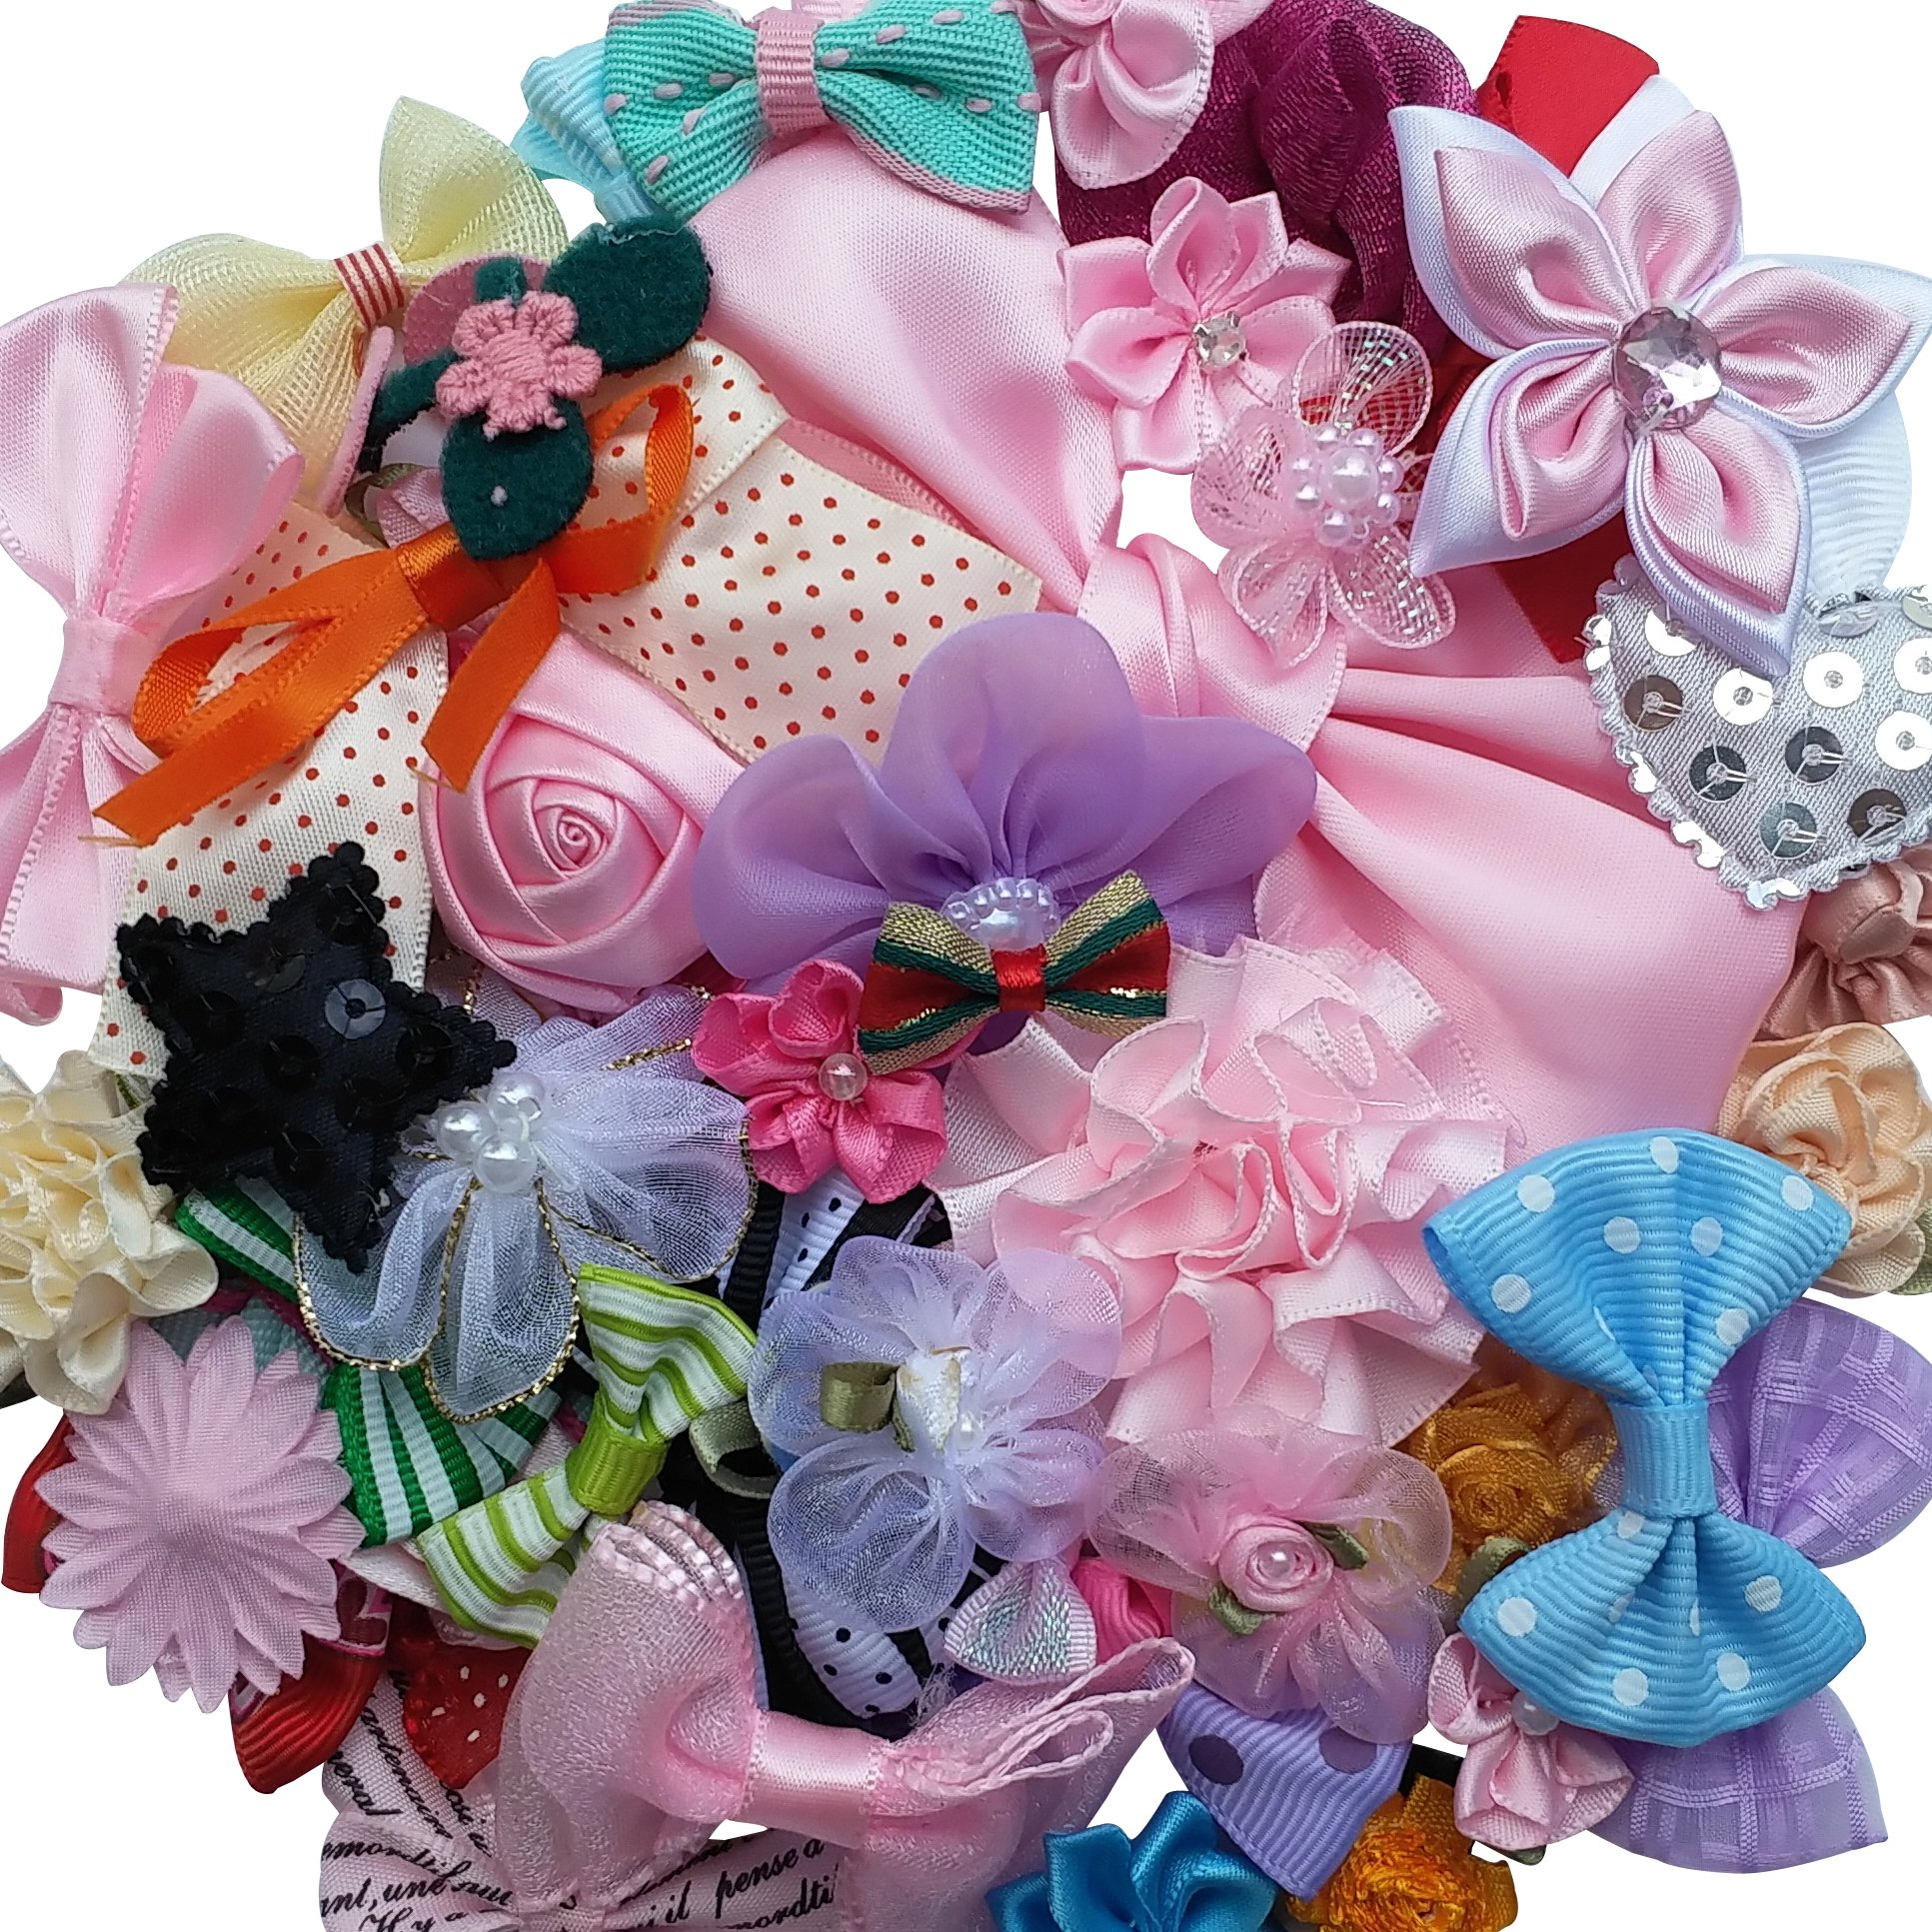 Chenkou Craft Mix Bulk 50pcs Ribbon Flowers Bows Craft Wedding Ornament Appliques A0241